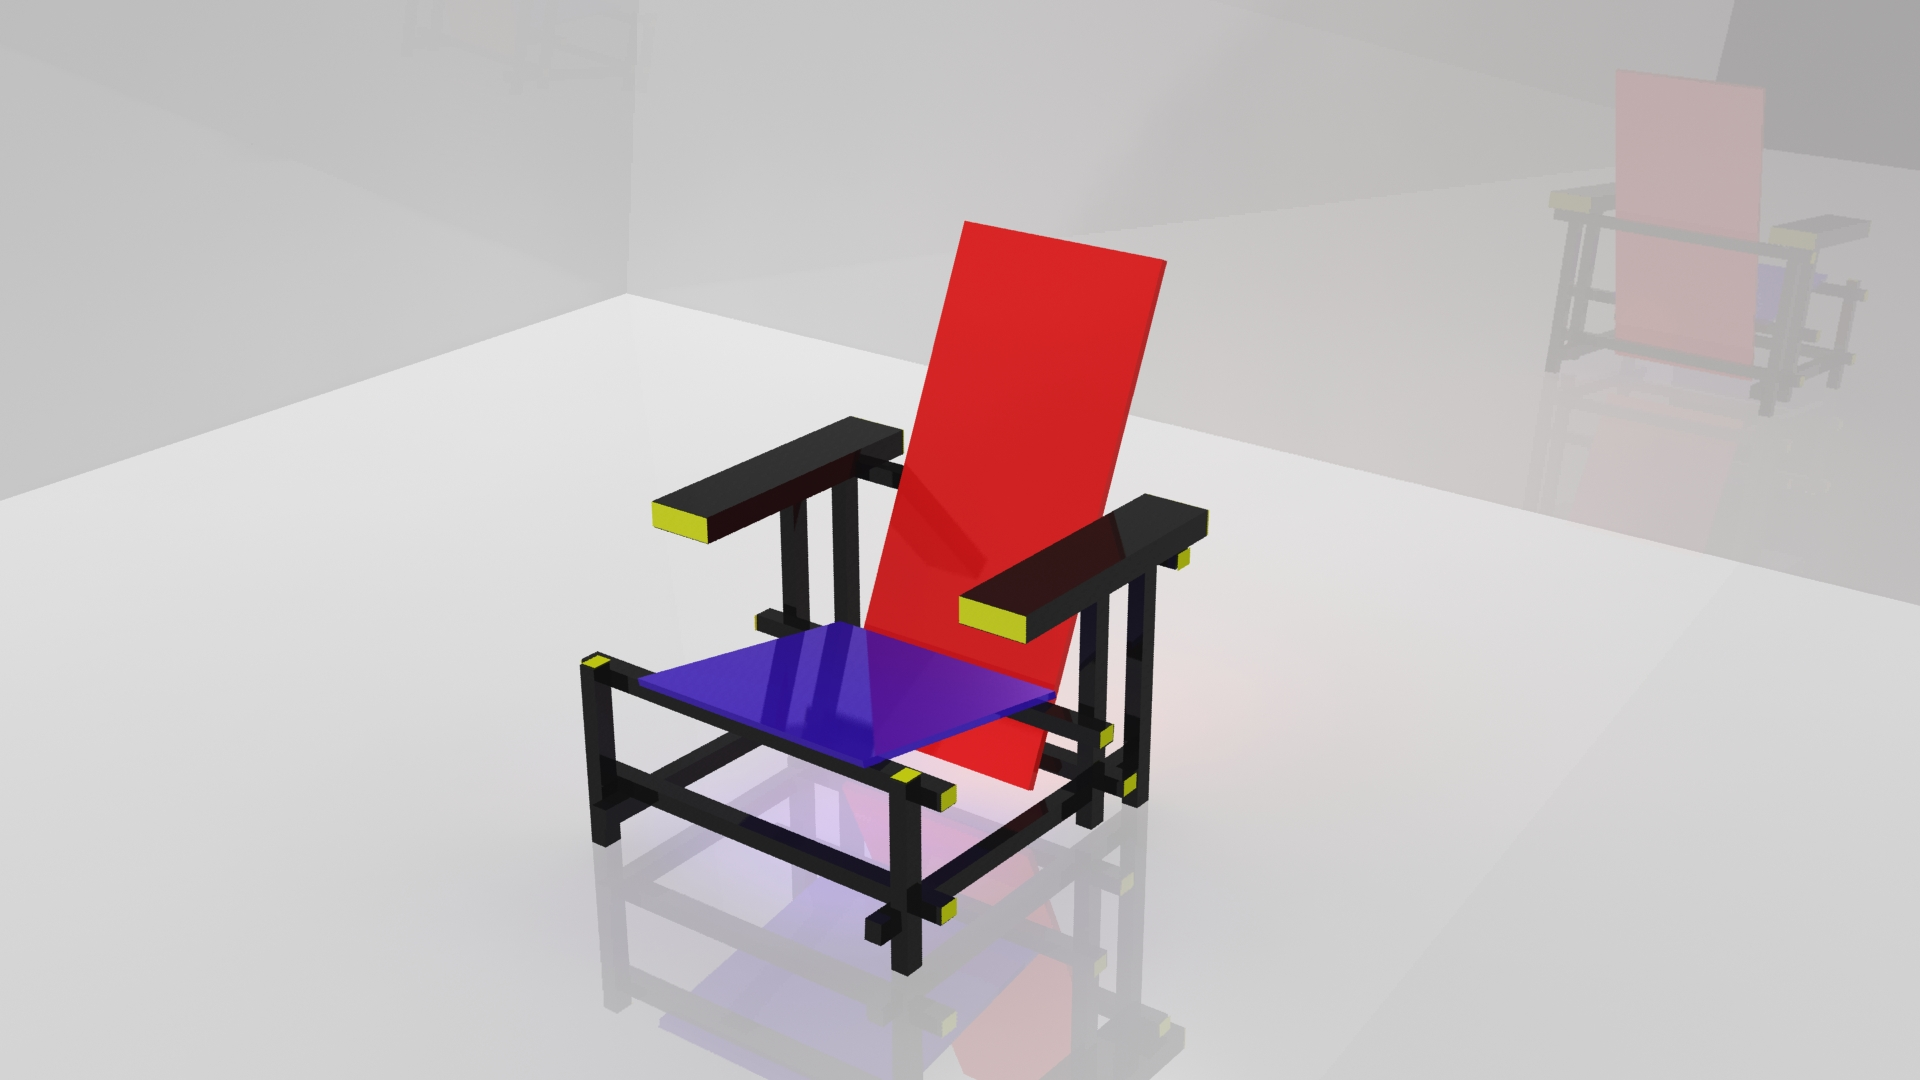 red blue chair best chiavari chairs d1 7 modelling jack thompson design